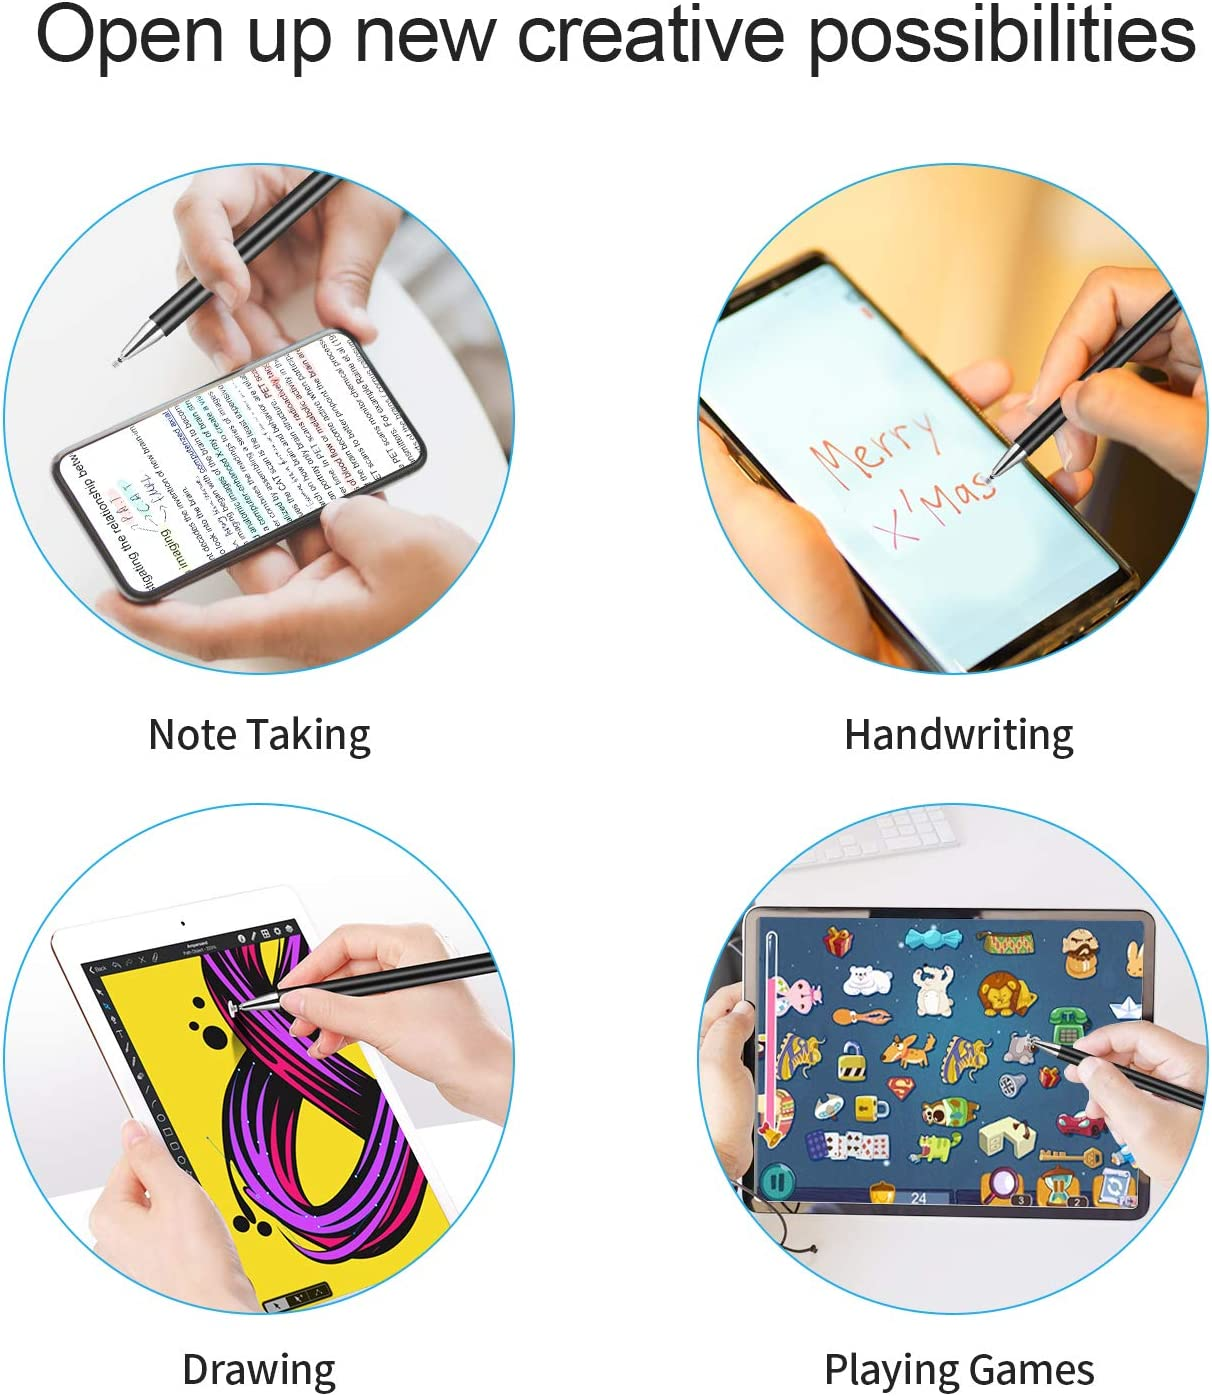 Black Smart High Sensitivity Pencil Drawing Writing Compatible with iPad Pro//iPad Mini//iPad Air//iPhone Series All Touch Screens Capacitive Stylus Pen for Touch Screens